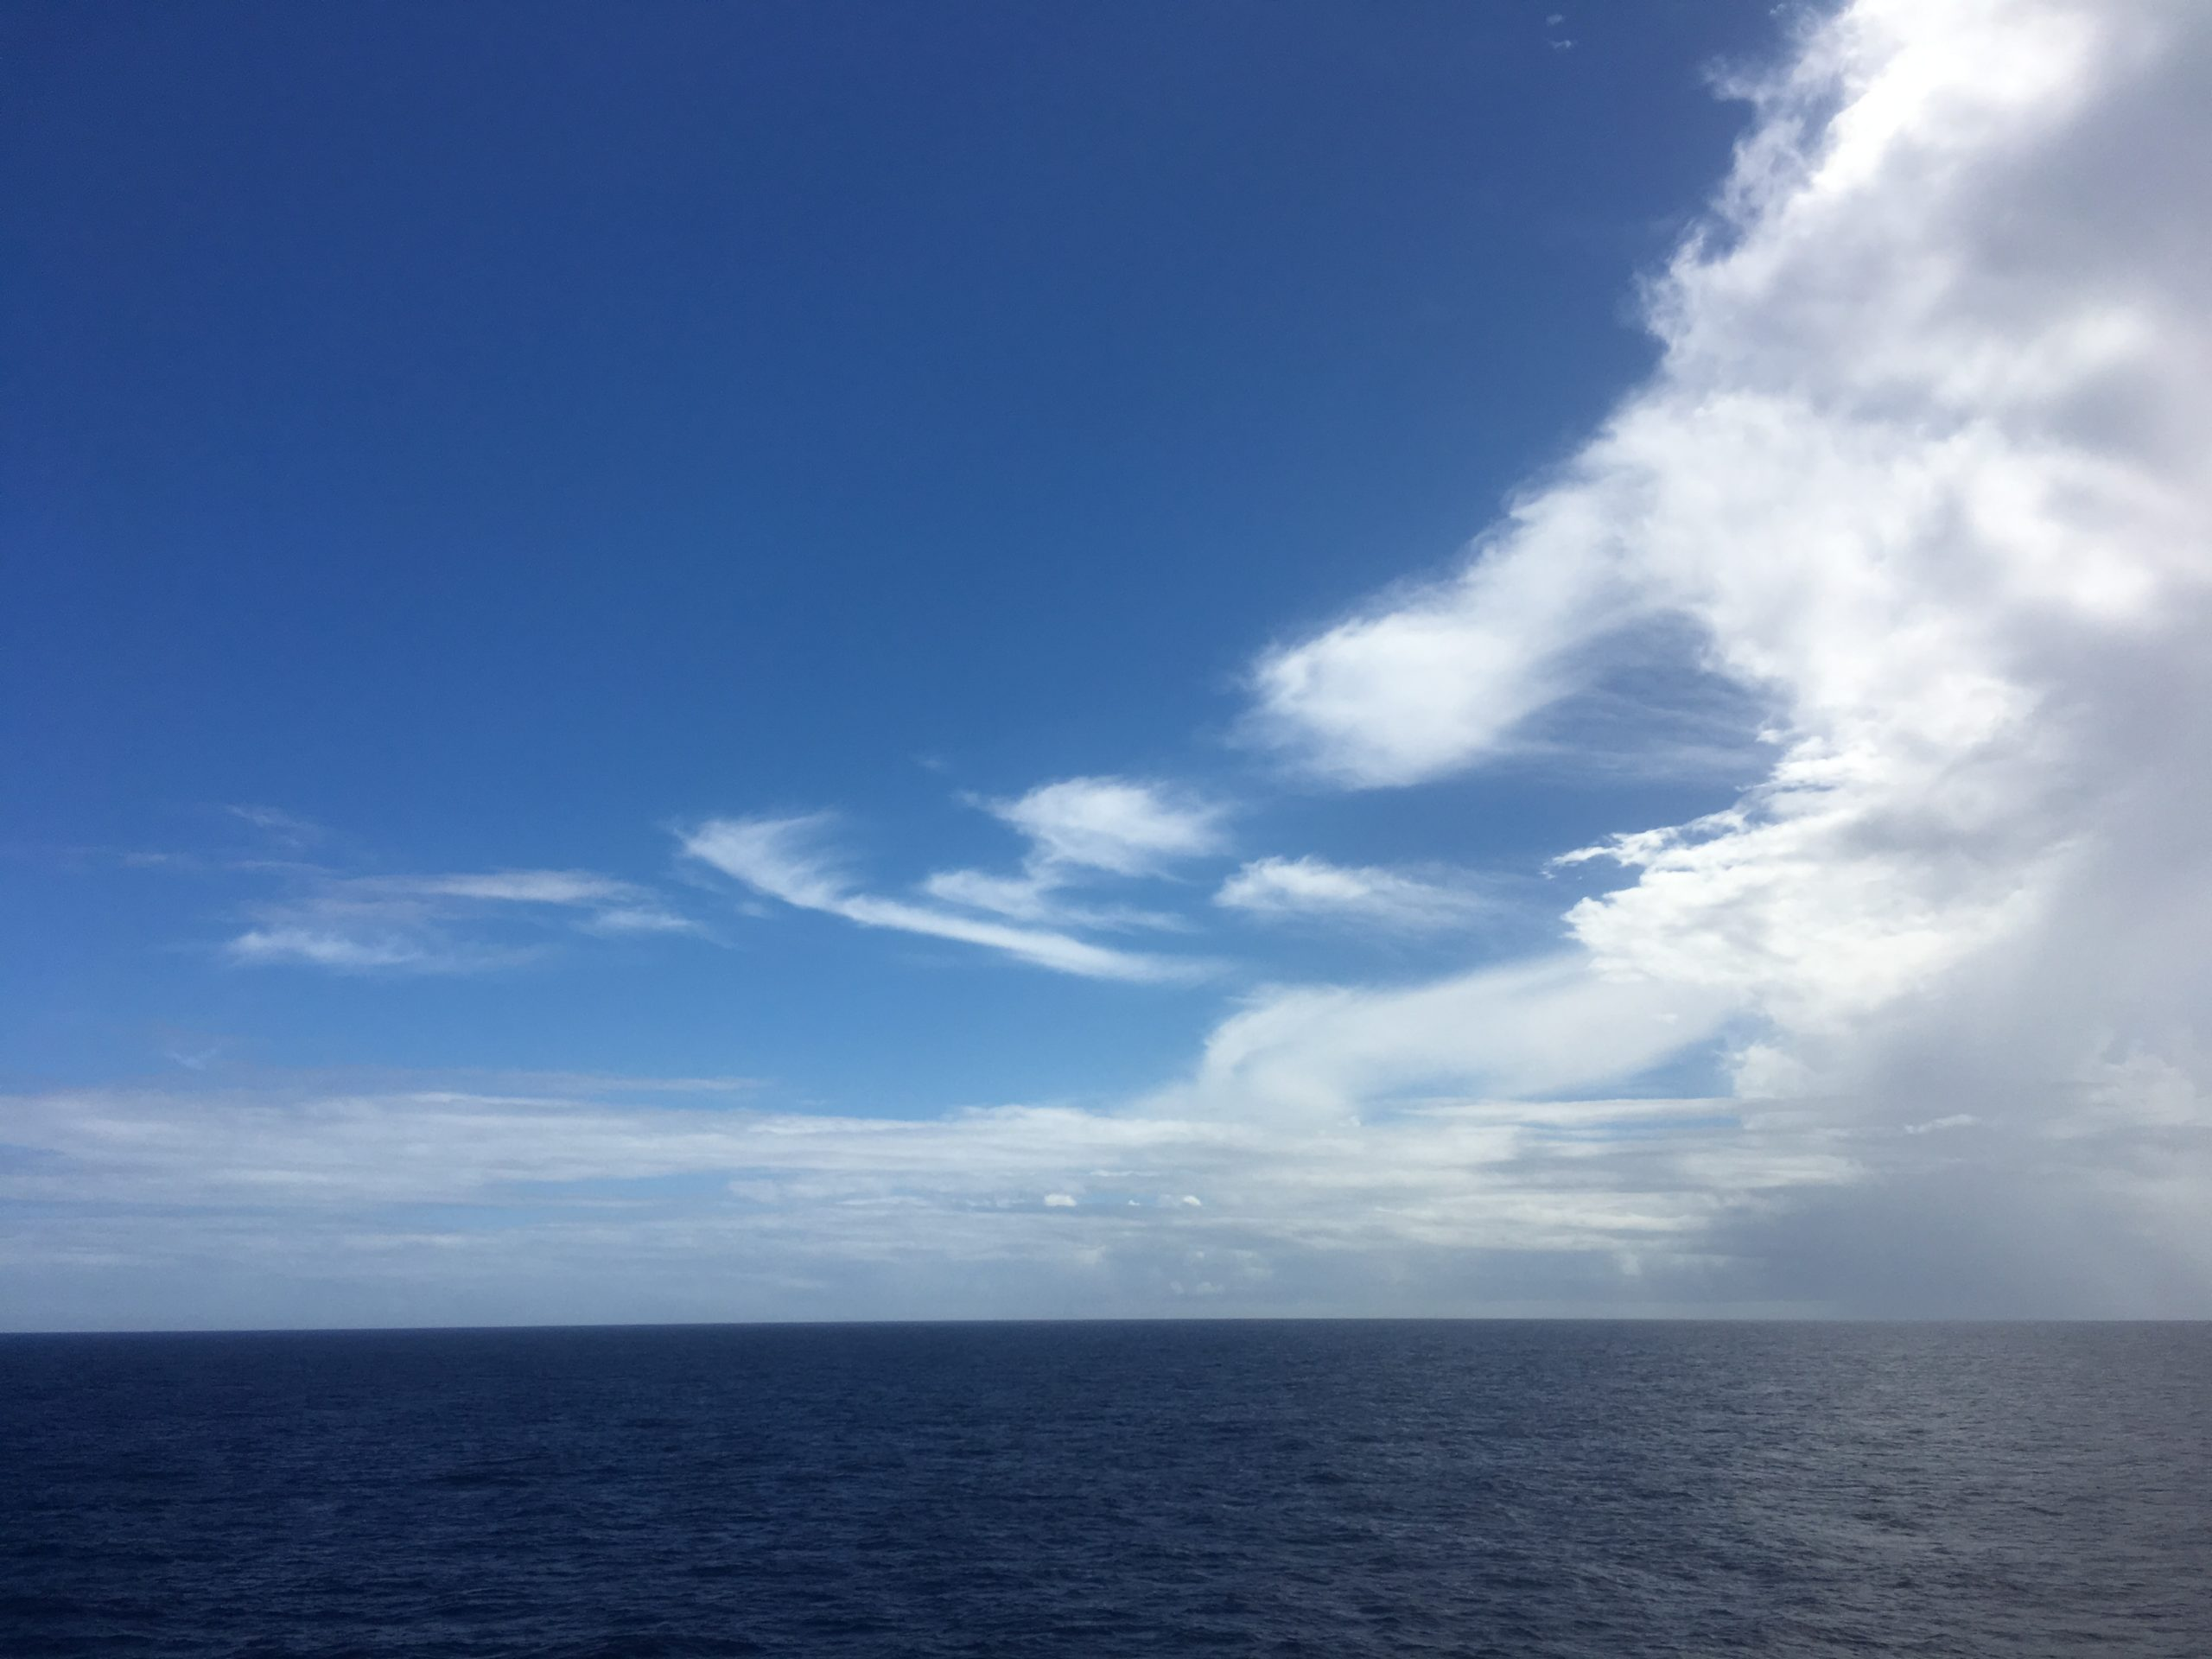 Continually changing Philippine Sea